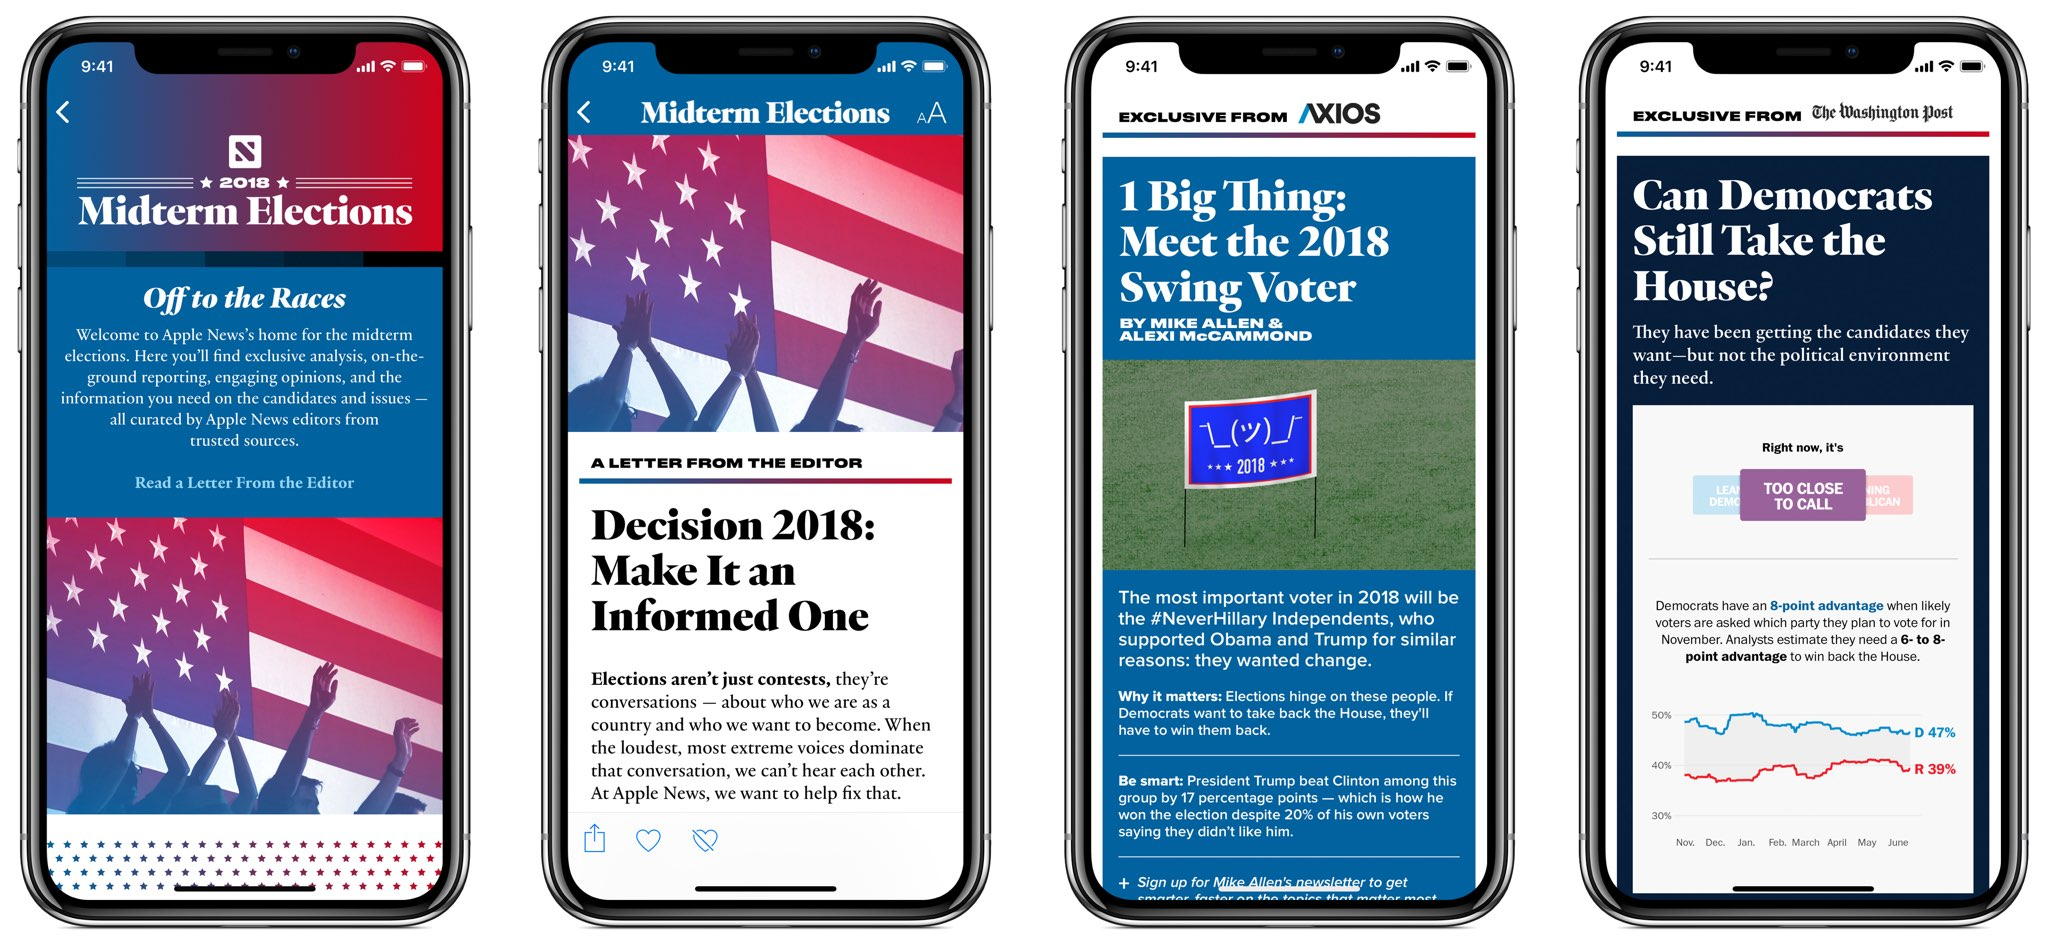 Screenshots of the new 2018 Midterm US Elections section in the Apple News app on iPhone